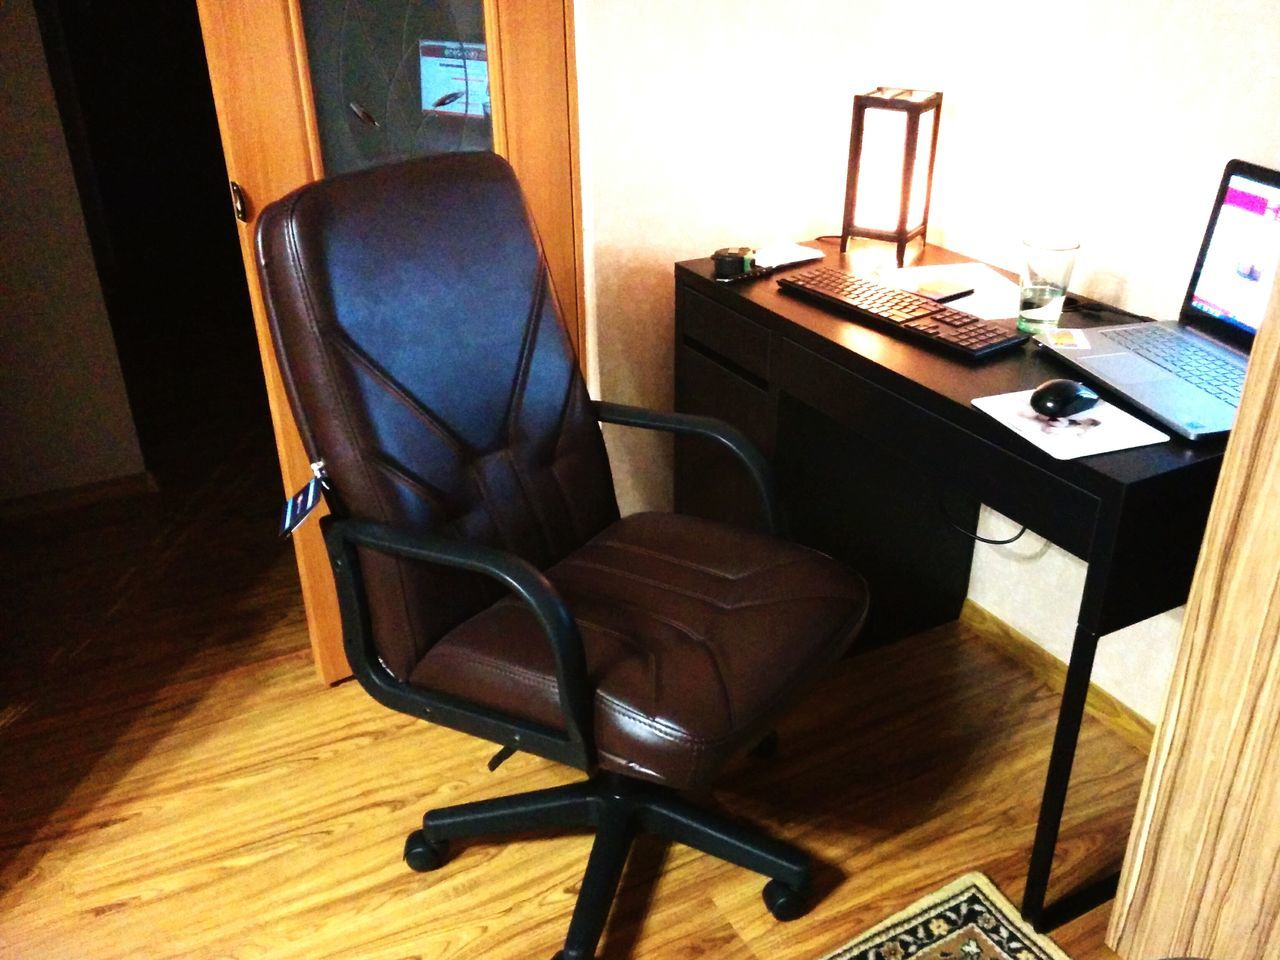 chair, indoors, hardwood floor, technology, home interior, desk, table, furniture, no people, window, wireless technology, office chair, computer, seat, day